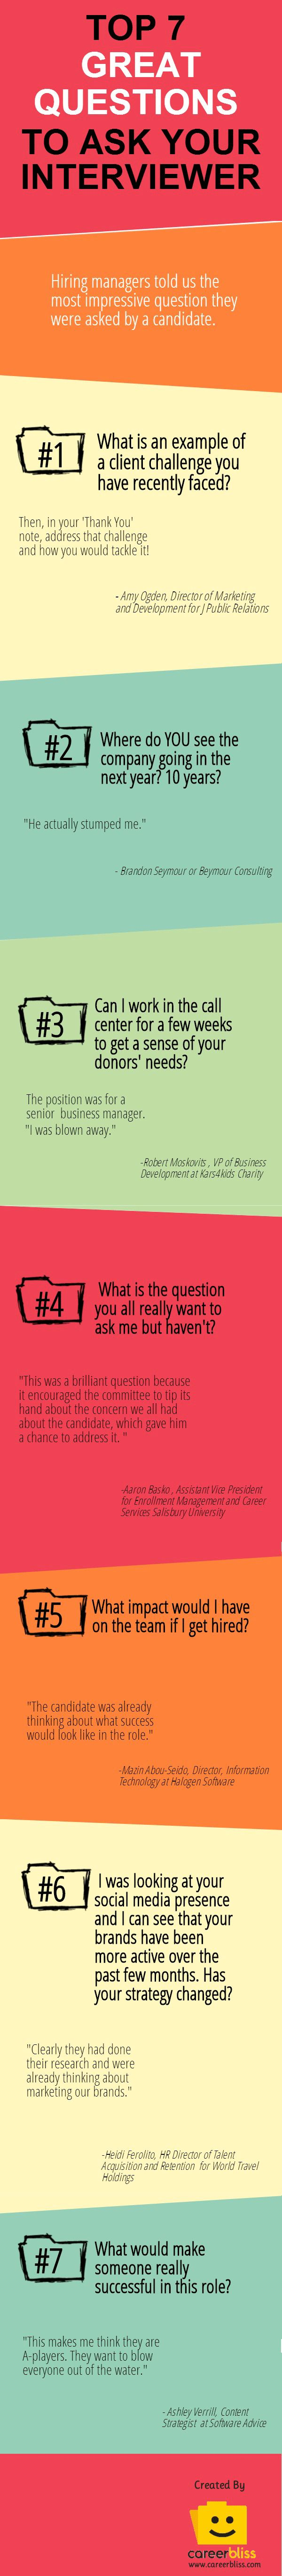 Blue Sky Resumes: Got a job interview? Here are some great questions to ask your interviewer.